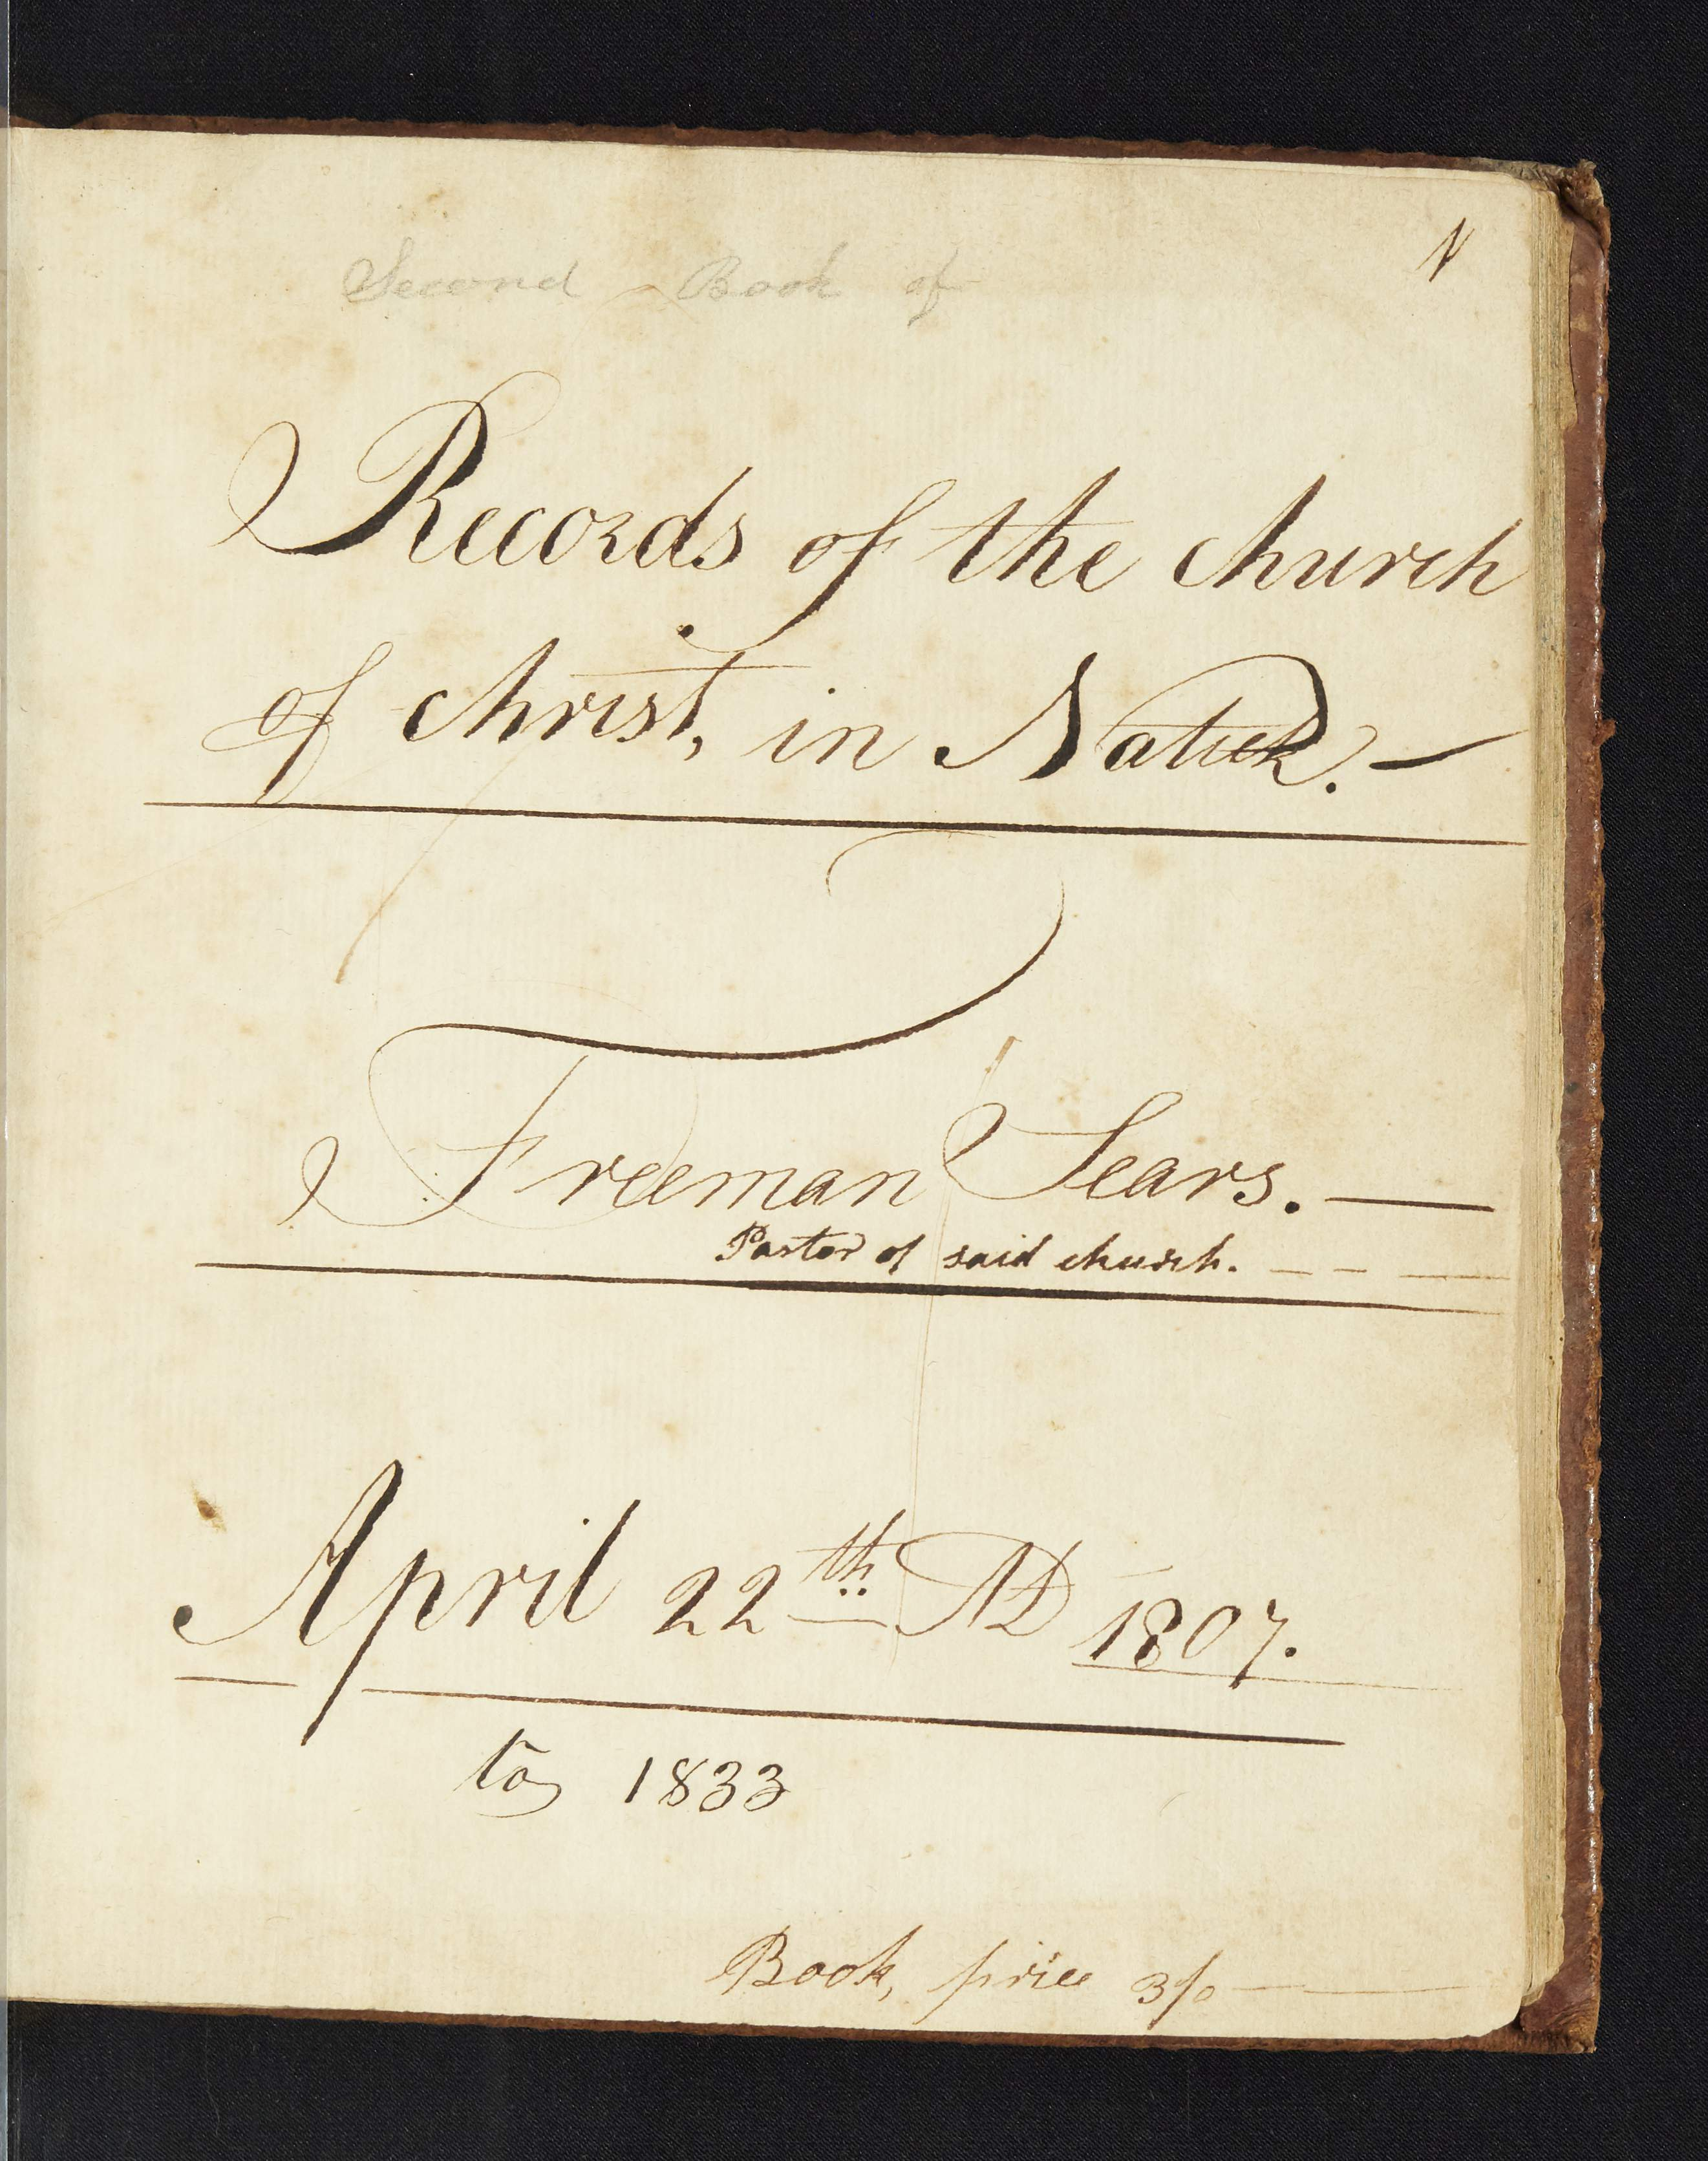 page from Natick First church records, 1802-1833